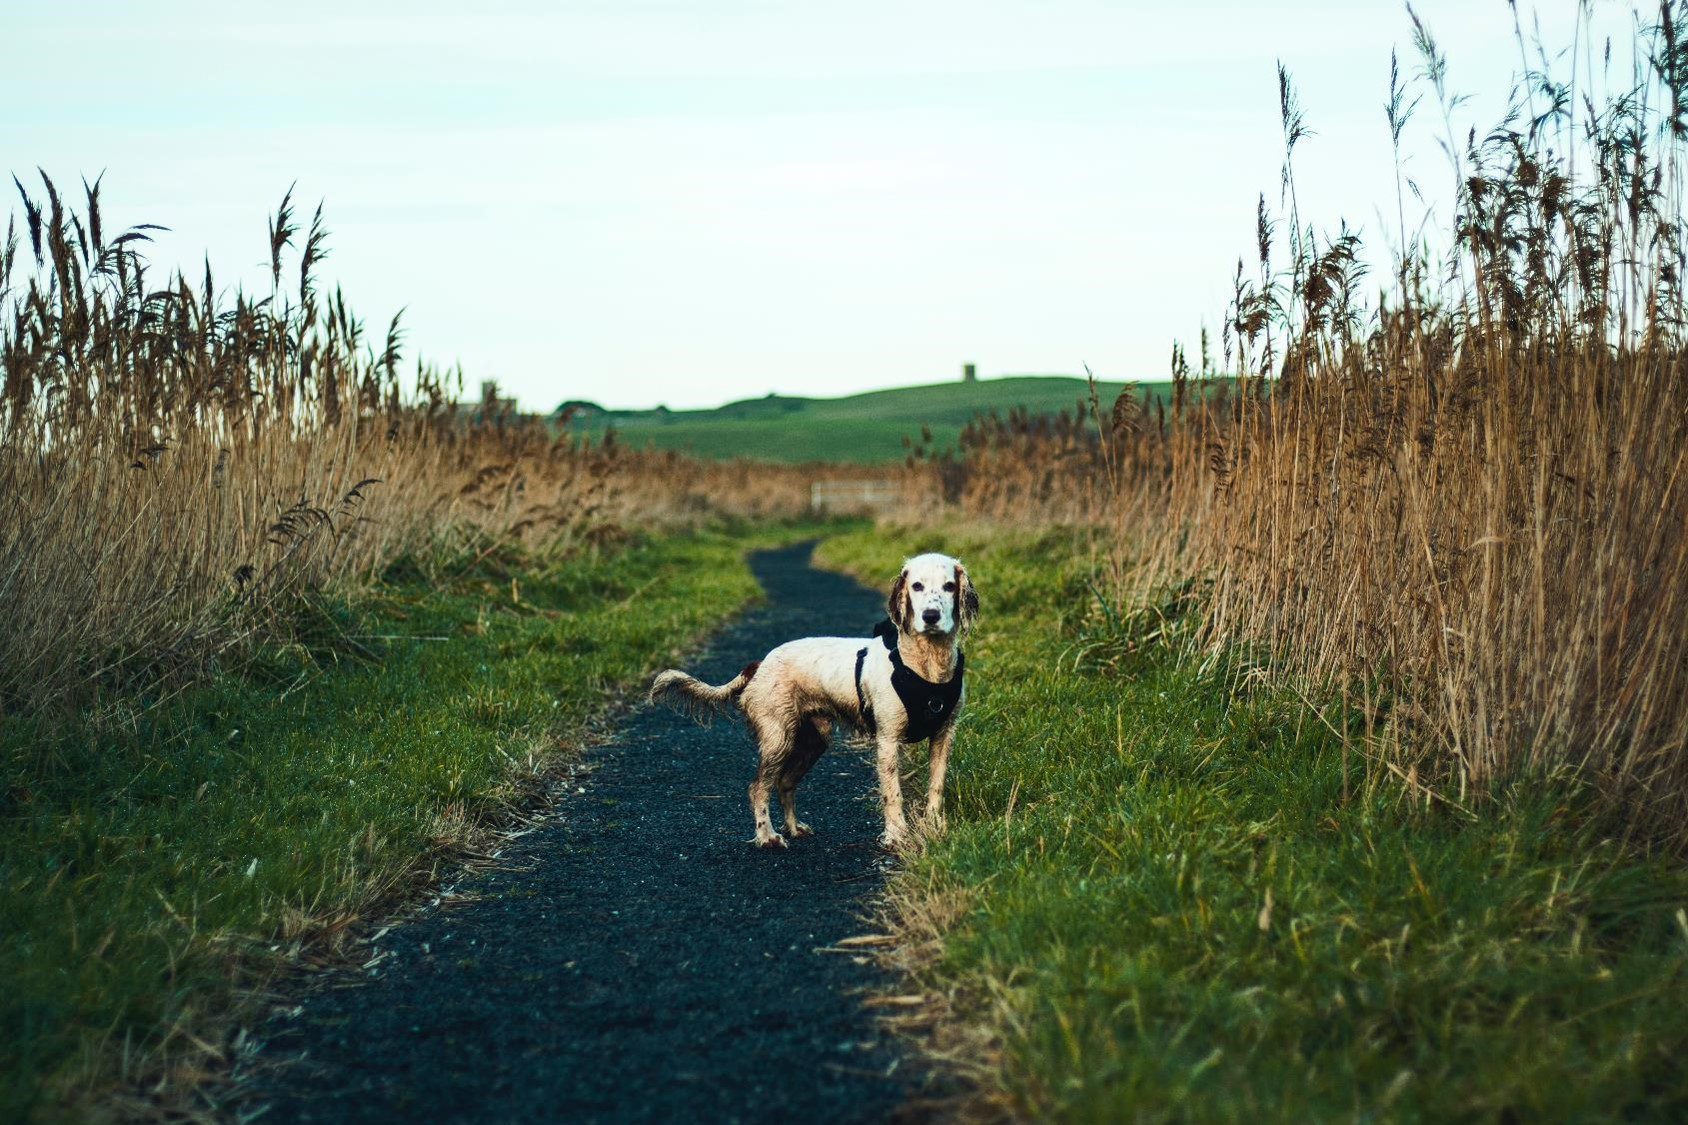 white dog loose on path in the country